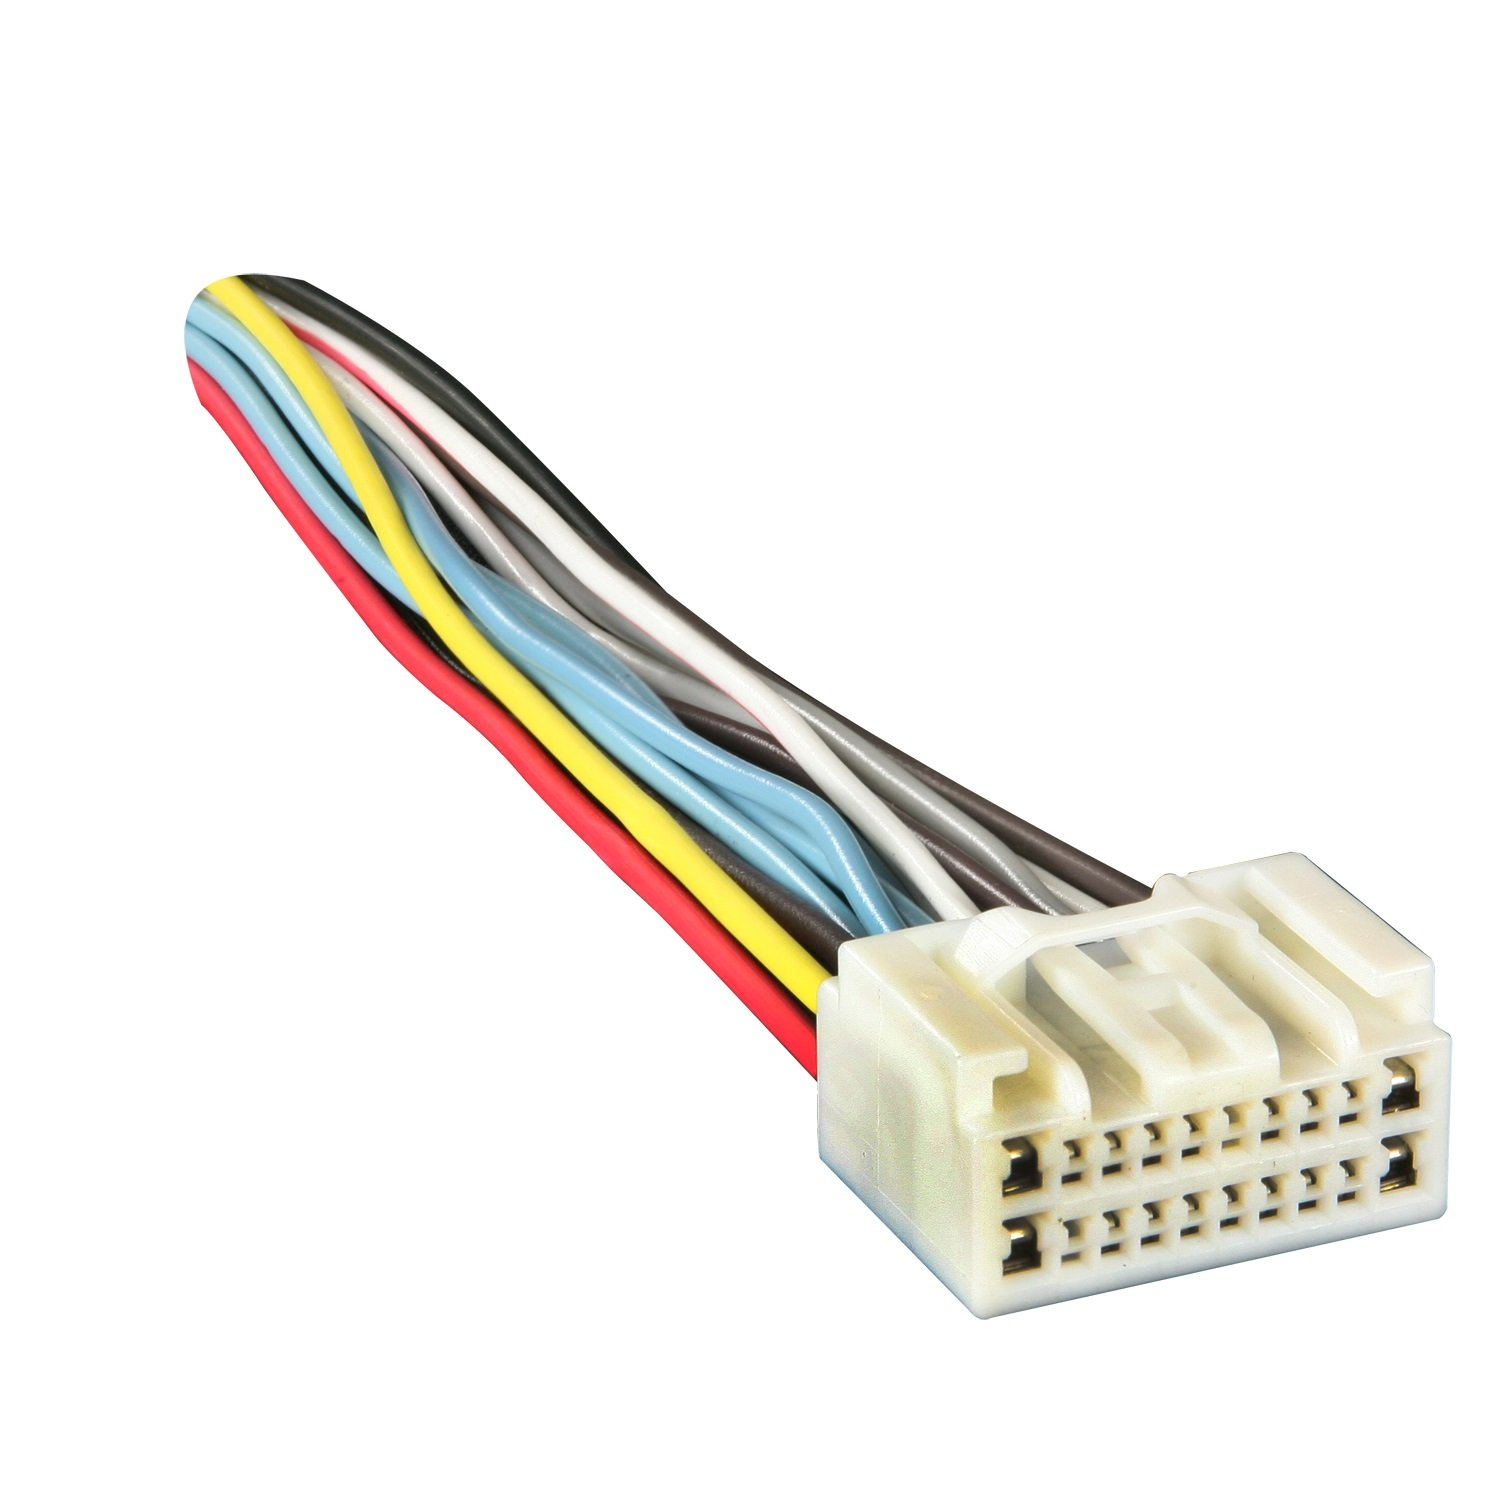 61k6eVpKLJL._SL1500_ amazon com metra 71 8113 reverse wiring harness for select 2000 where to buy a trailer wiring harness at panicattacktreatment.co